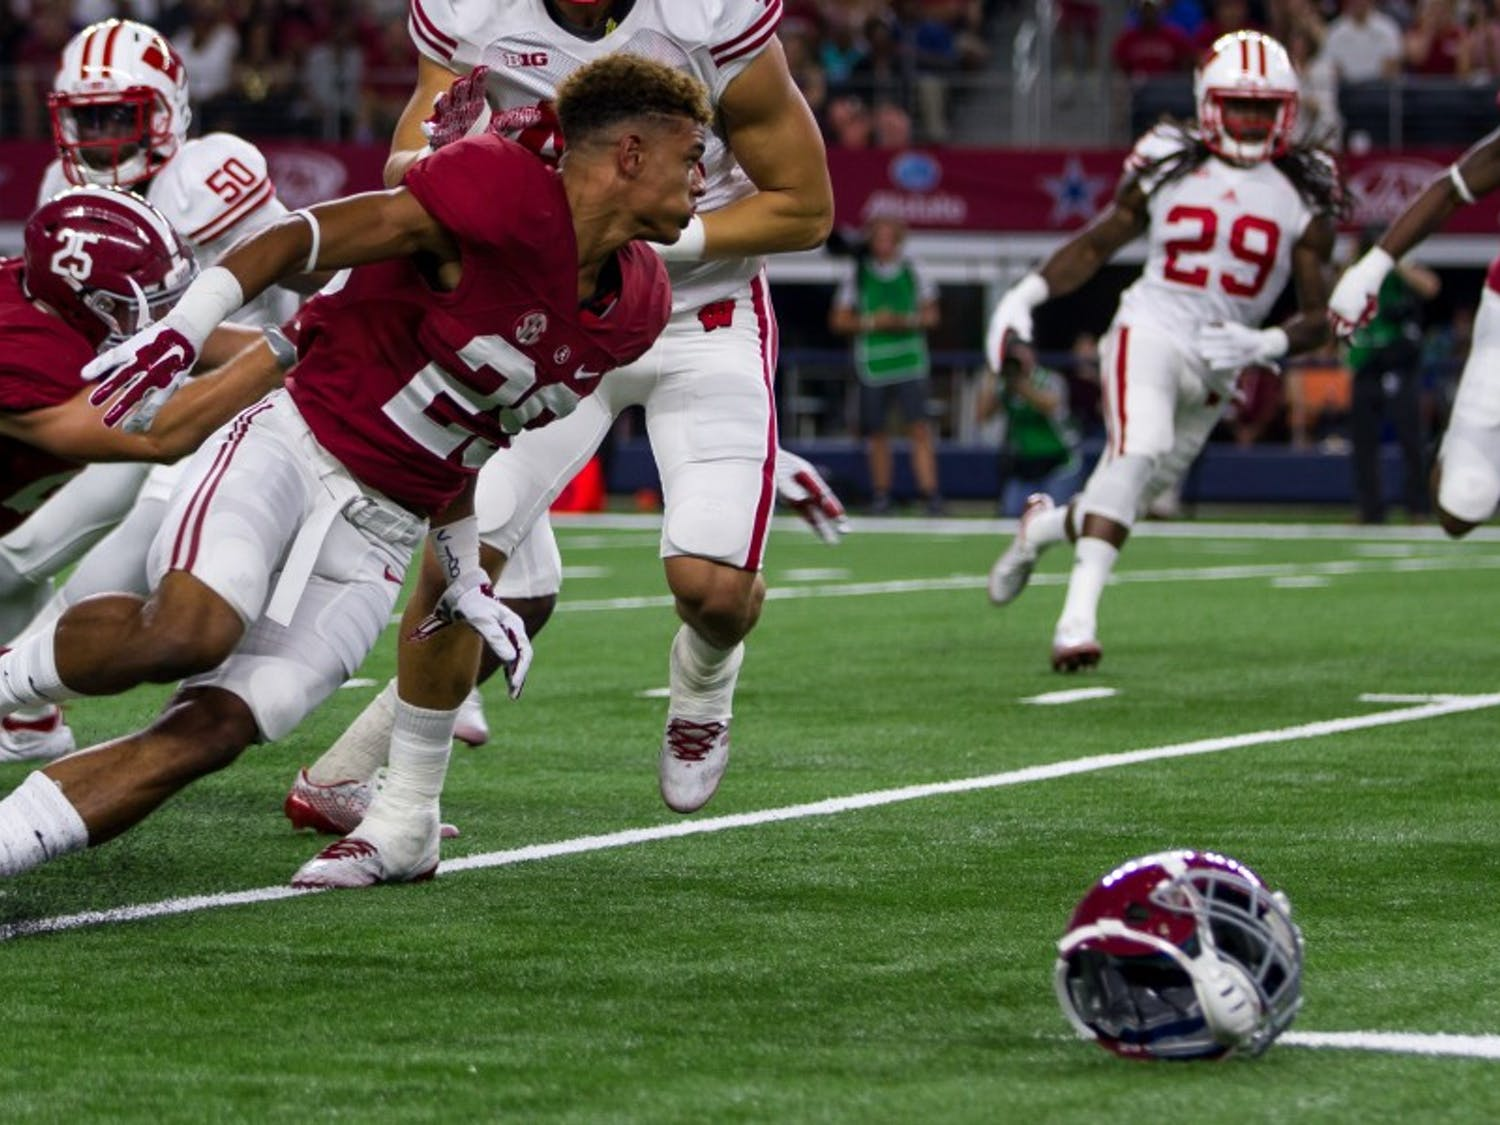 A group of UW-Madison researchers is hoping to raise awareness among collegeathletesabout the importance of reporting concussions that occur in contact and non-contact sports.